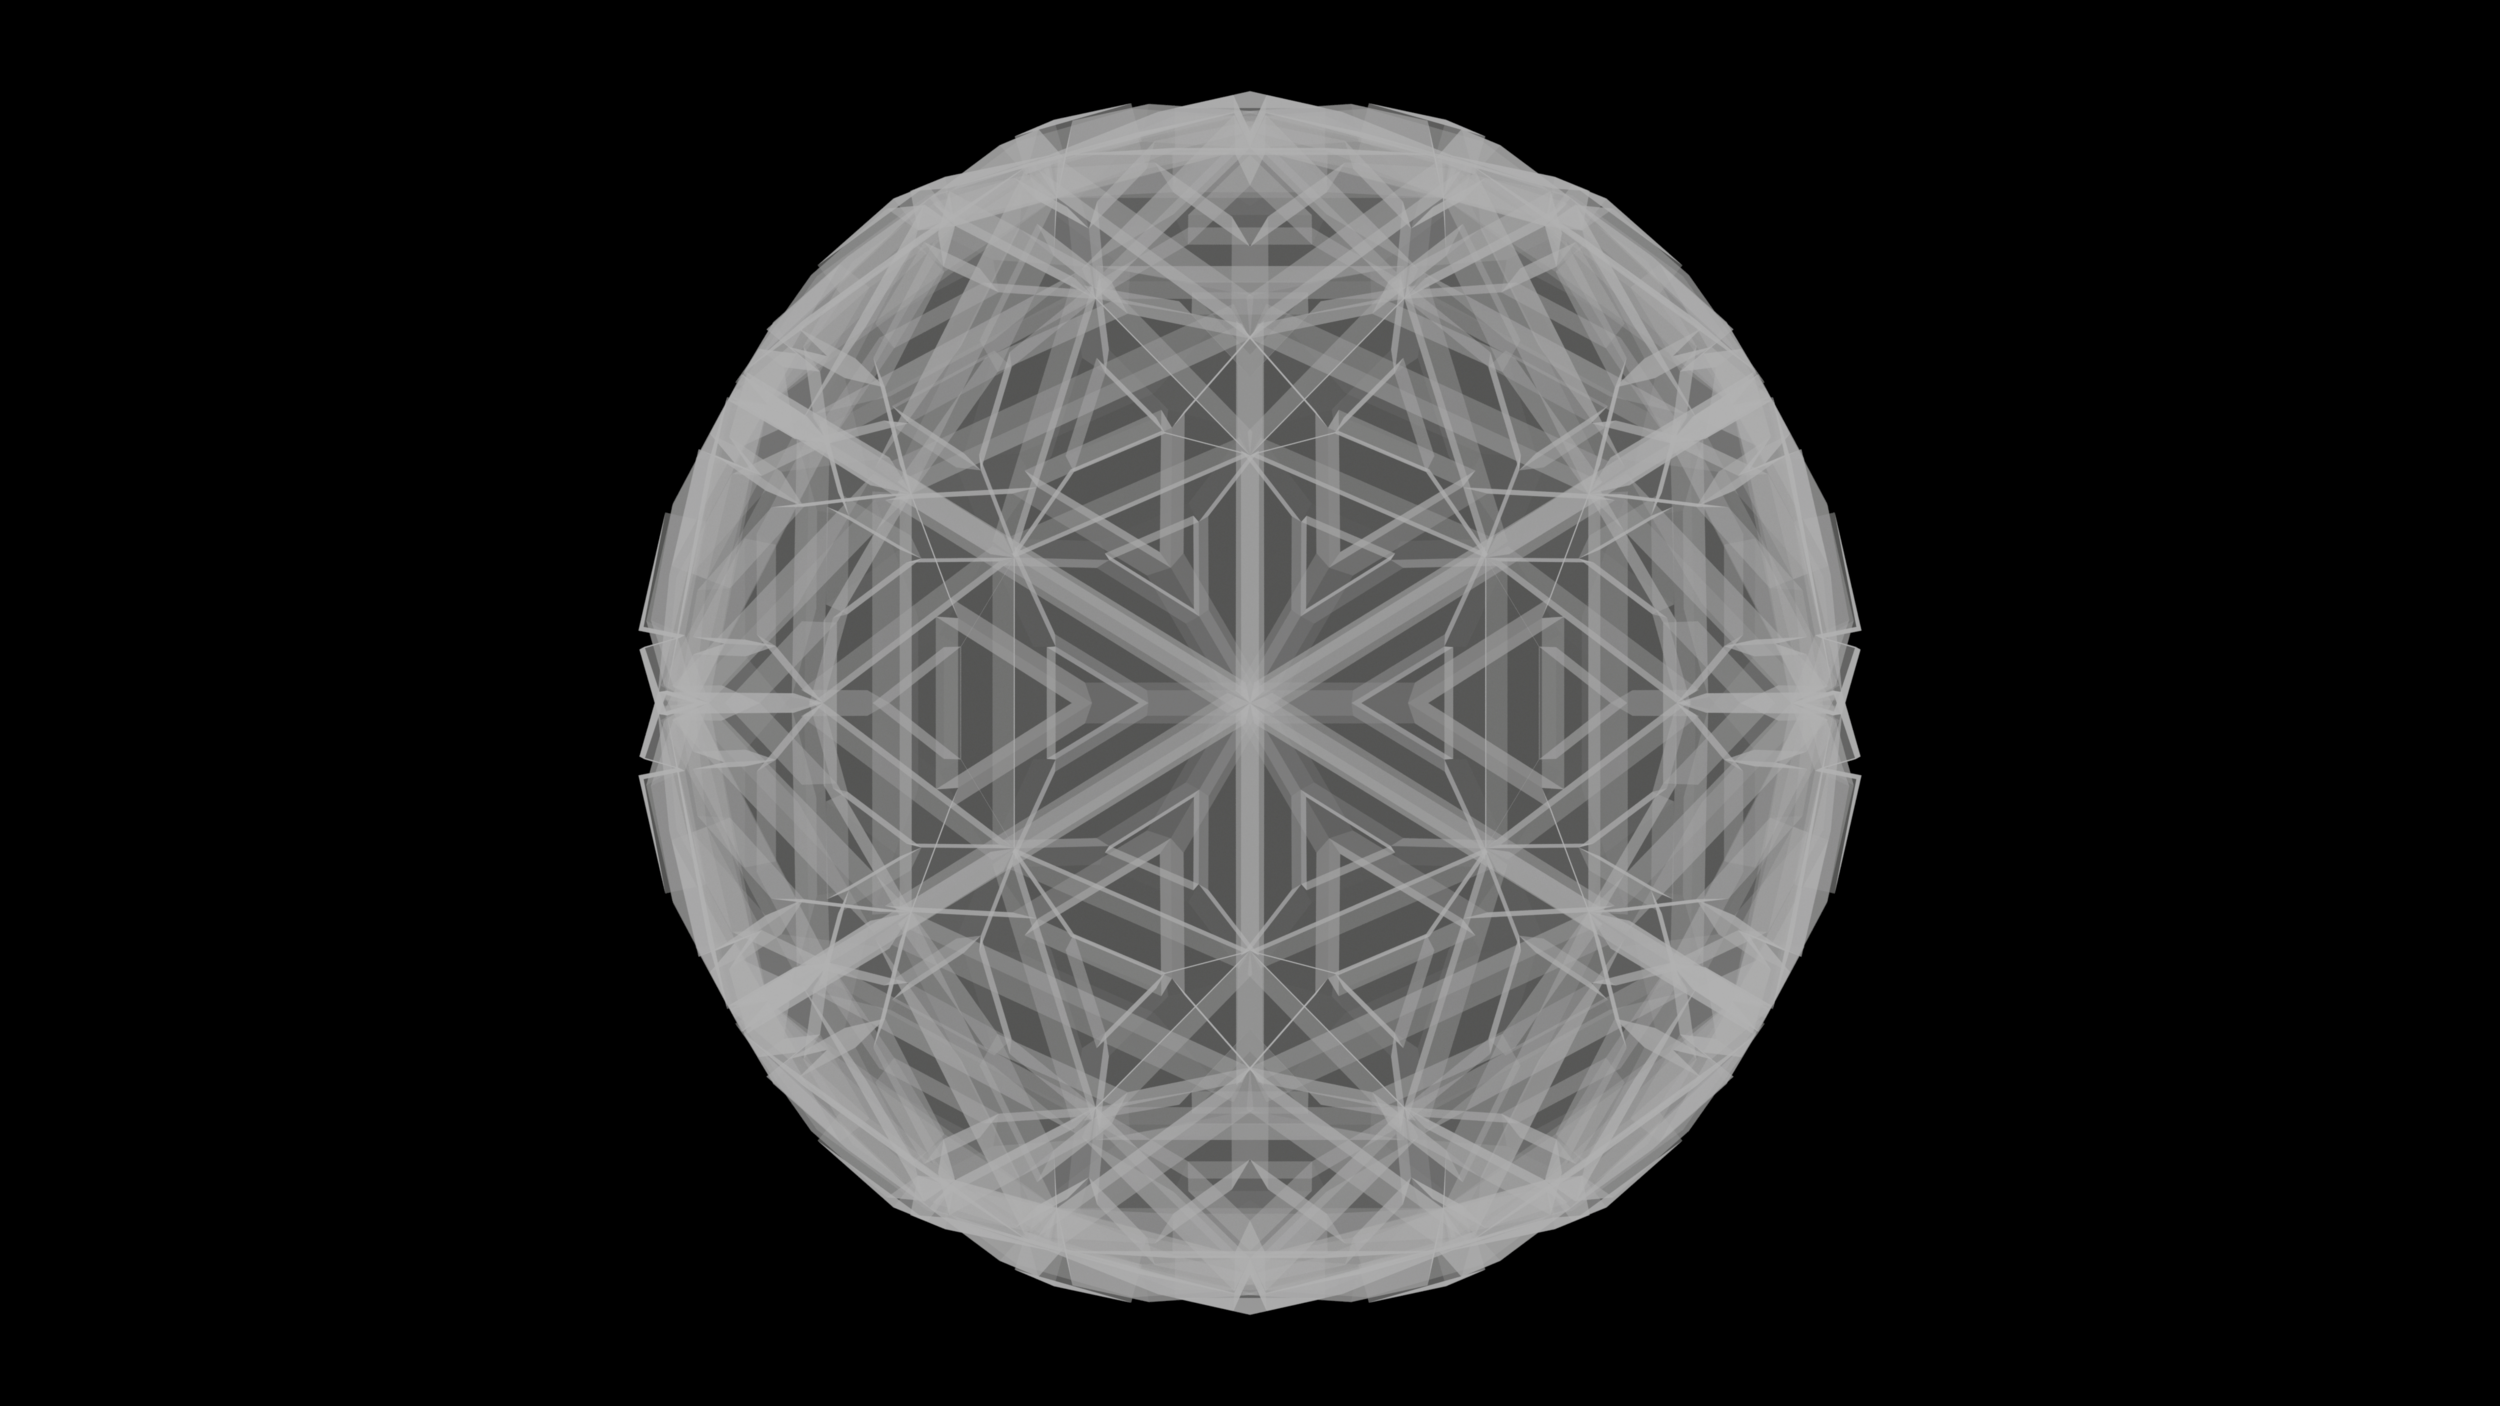 hex sphere fracture 08.png